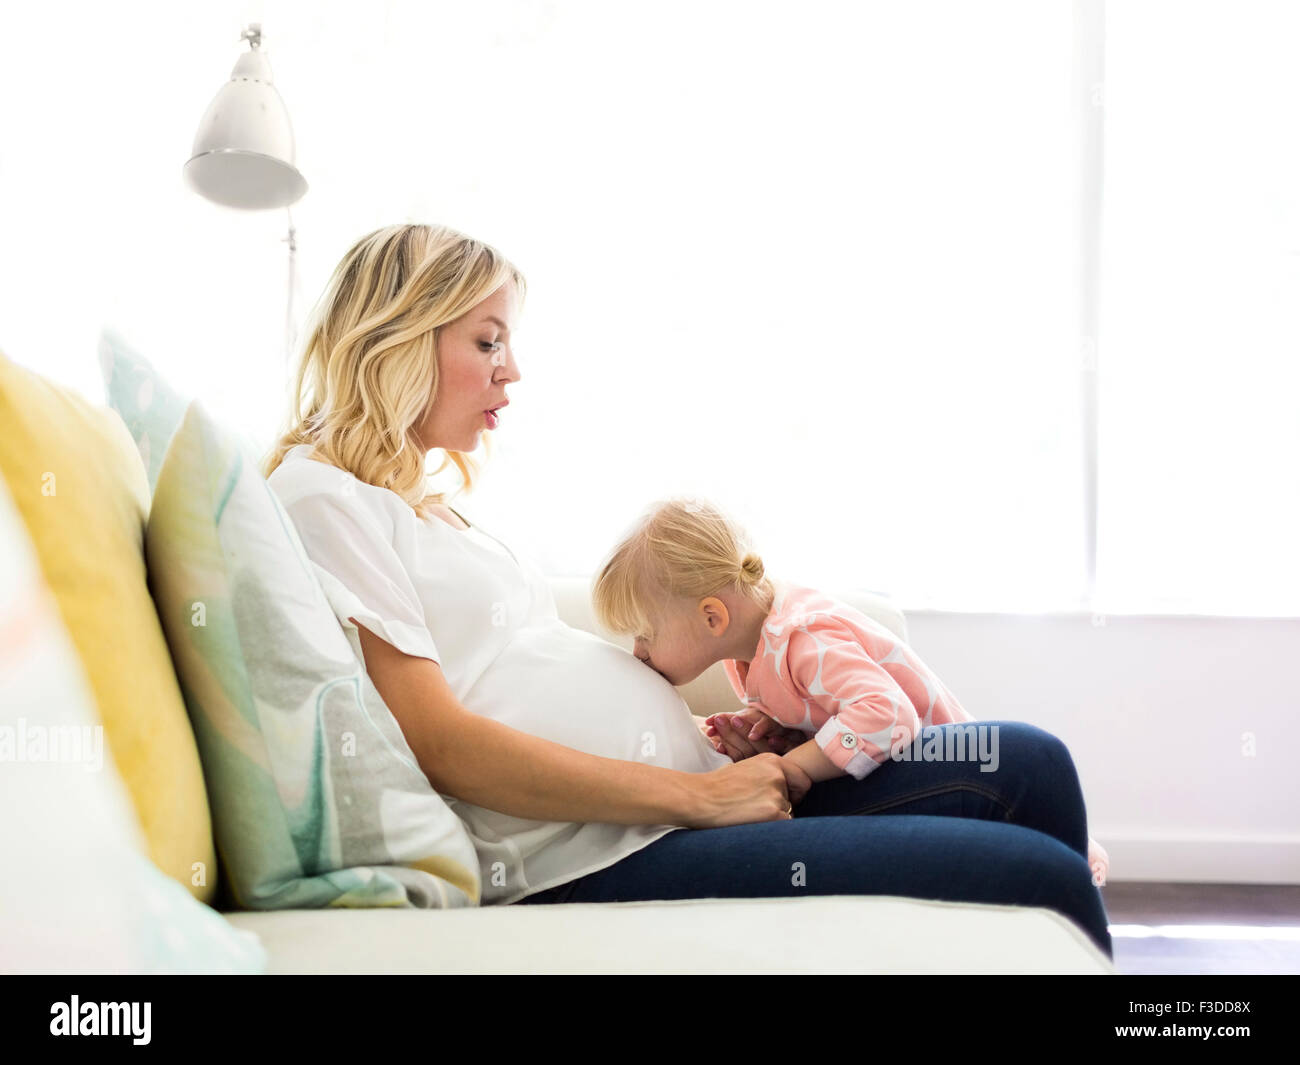 Girl (2-3) kissing belly of mother - Stock Image